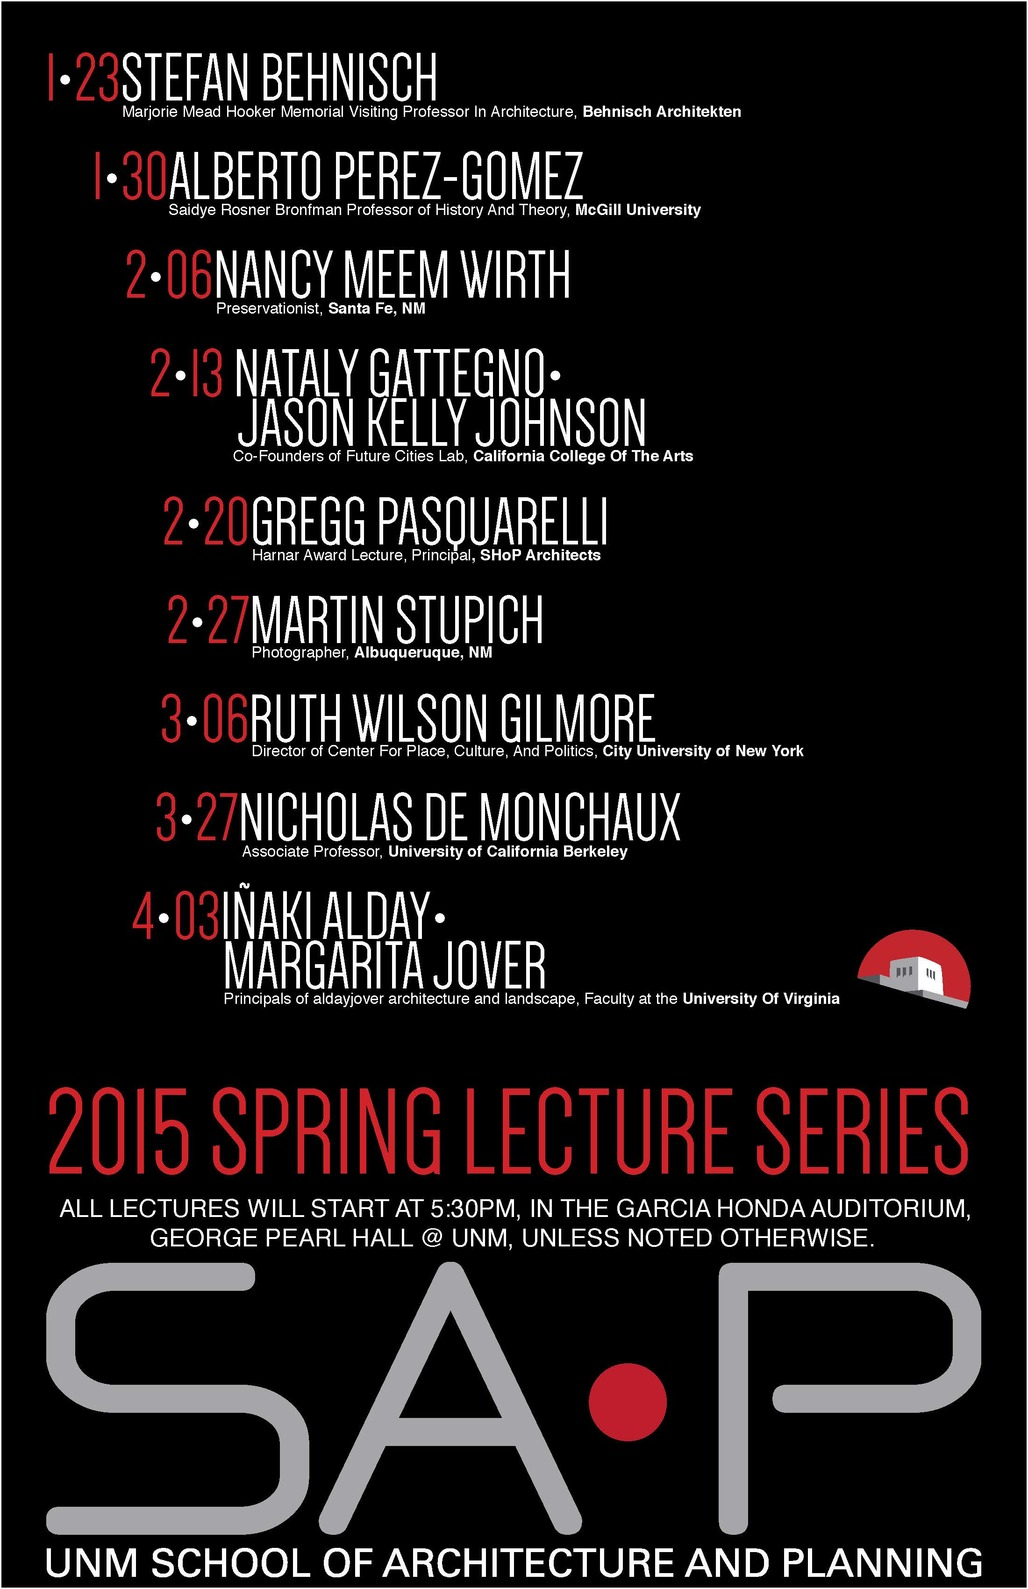 Spring 15 Lecture Series at The University of New Mexico School of Architecture and Planning. Image via saap.unm.edu